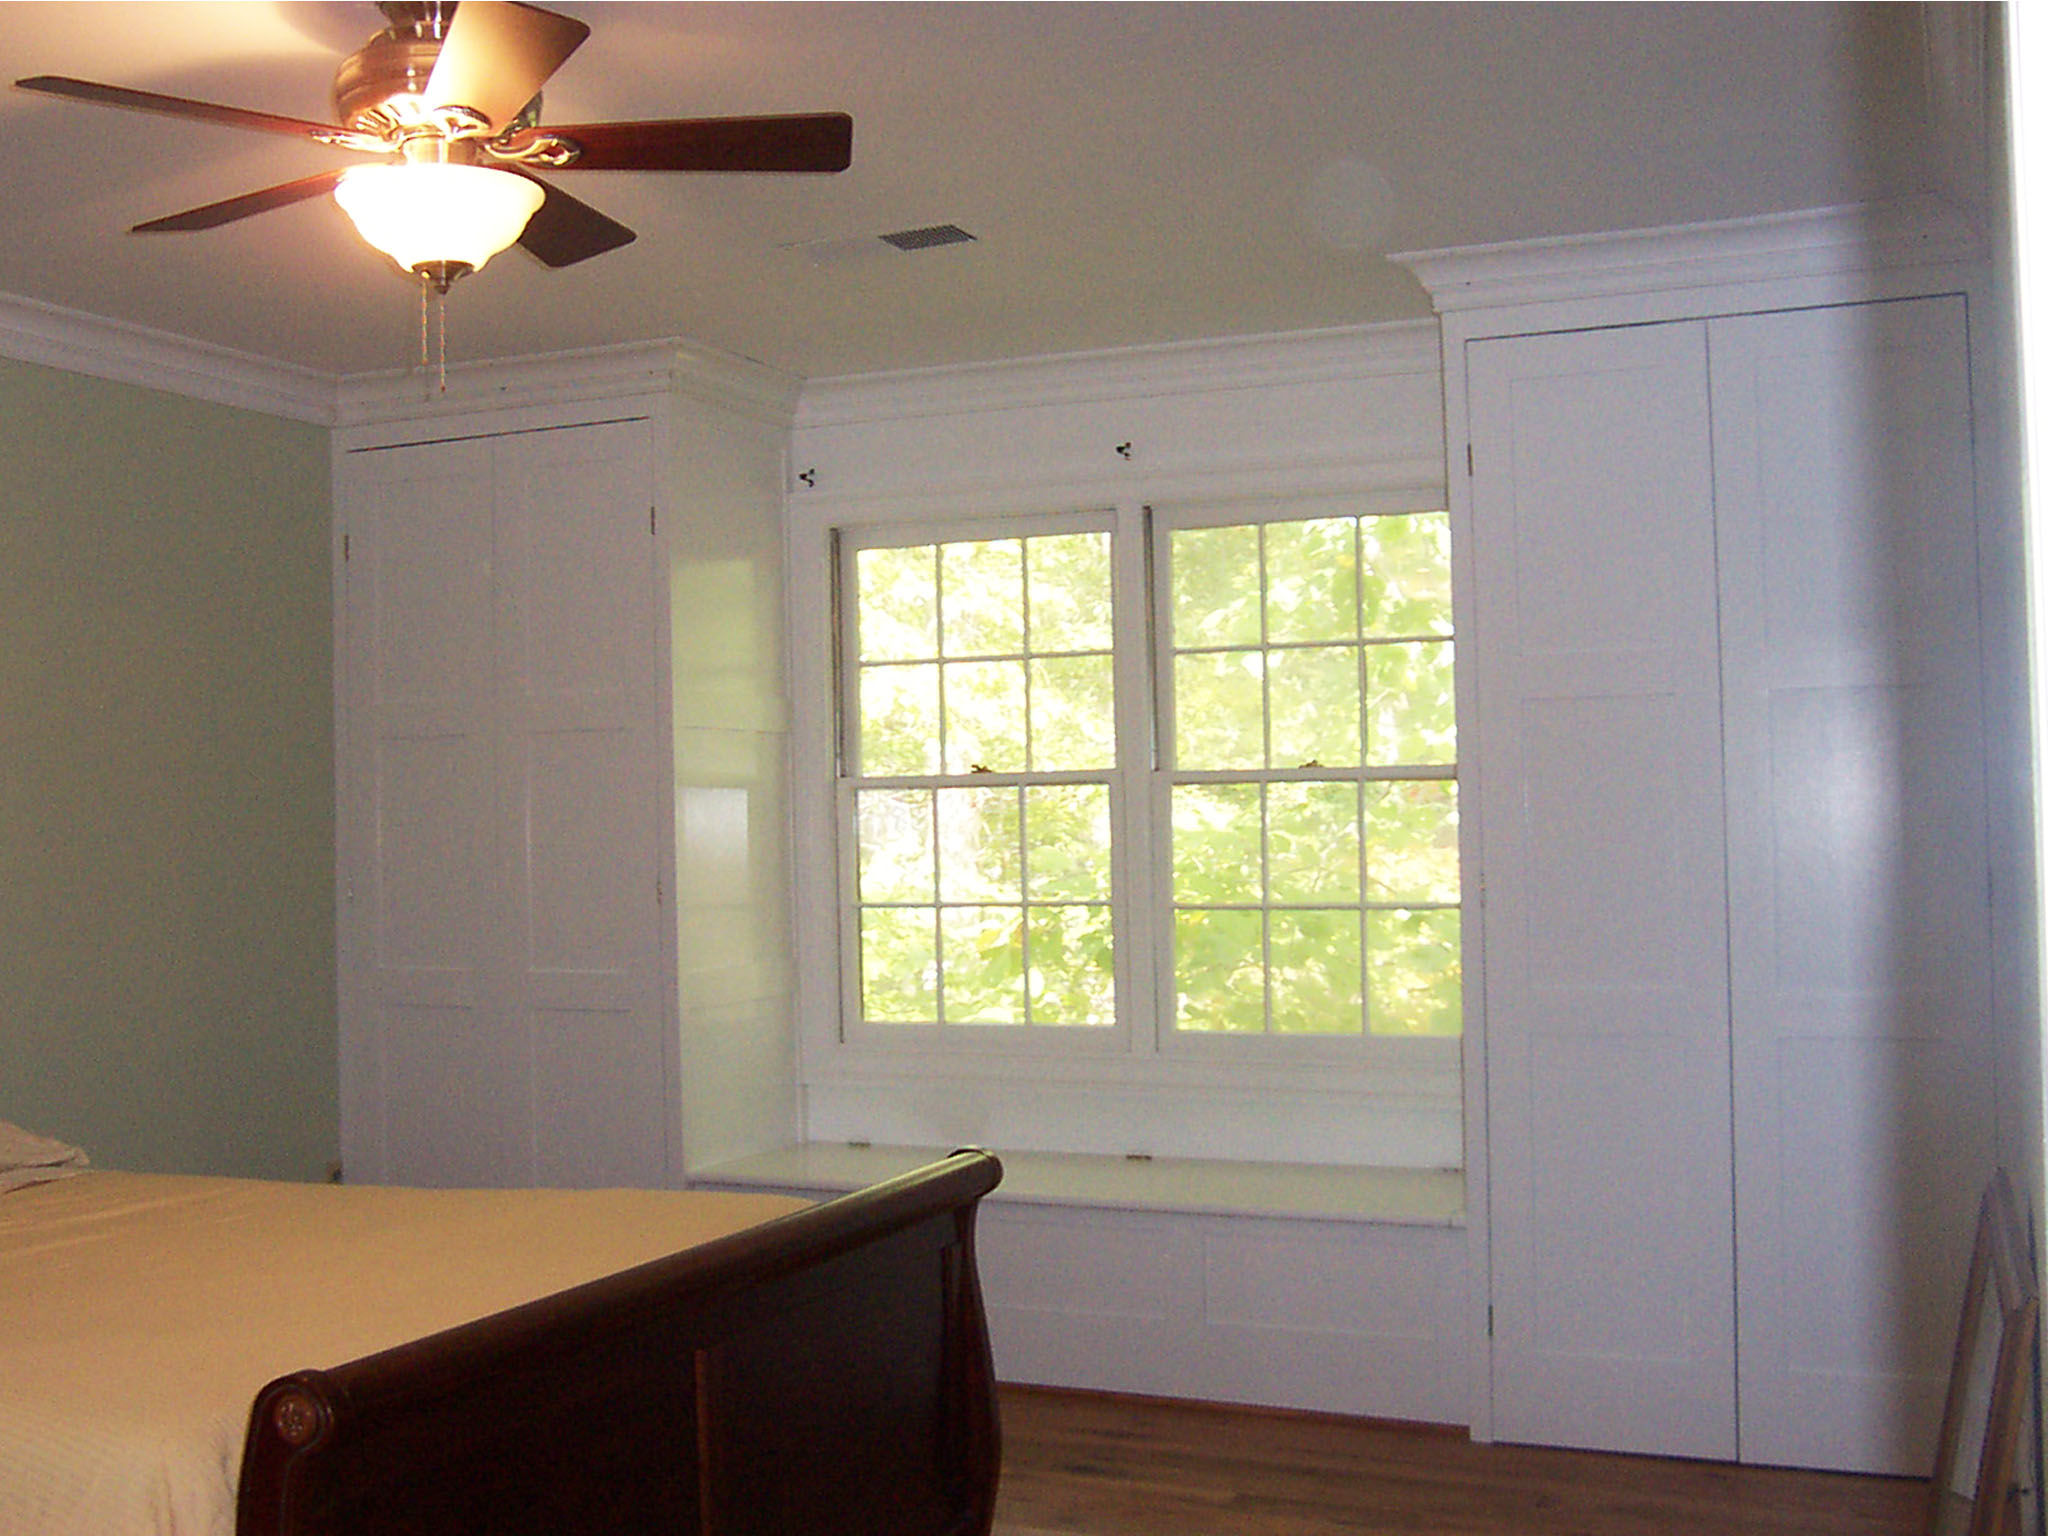 Bedroom Built-in Closet Cabinetry and Window Seat